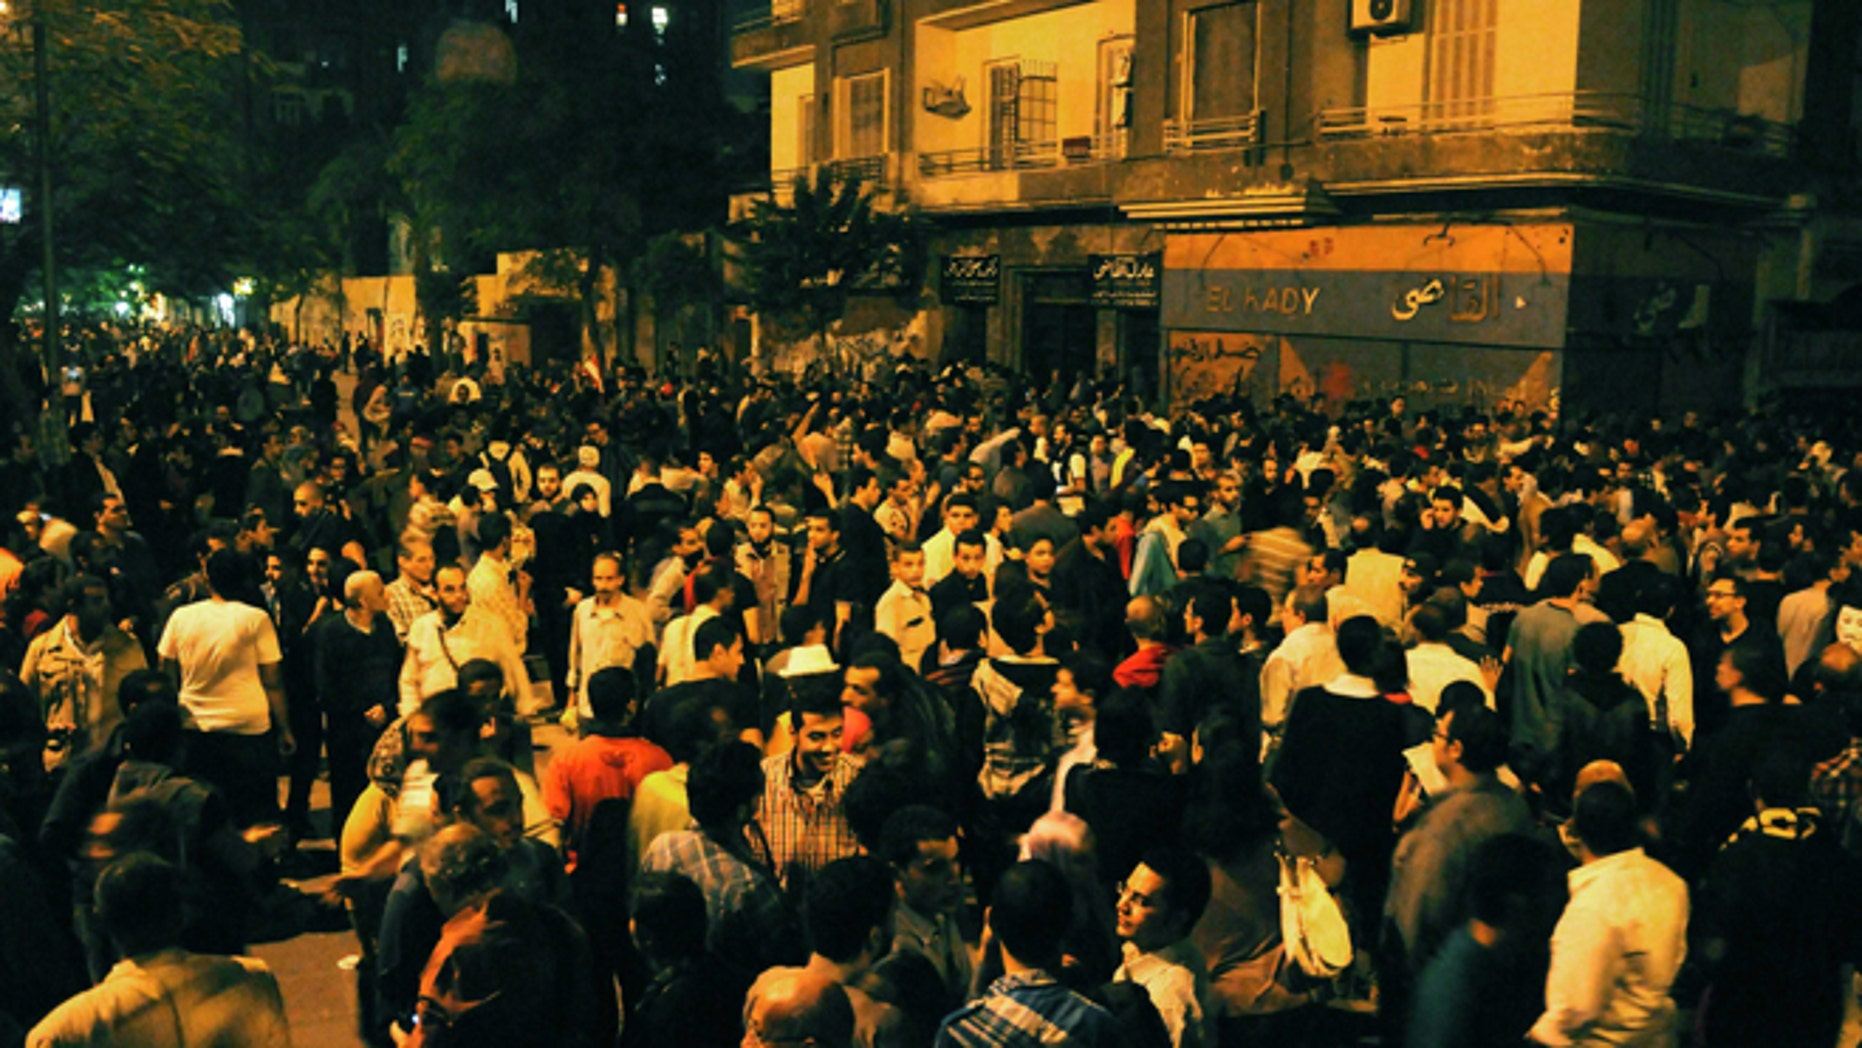 Nov. 19, 2012: Egyptian protesters gather during clashes with security forces, not pictured, in Cairo, Egypt.